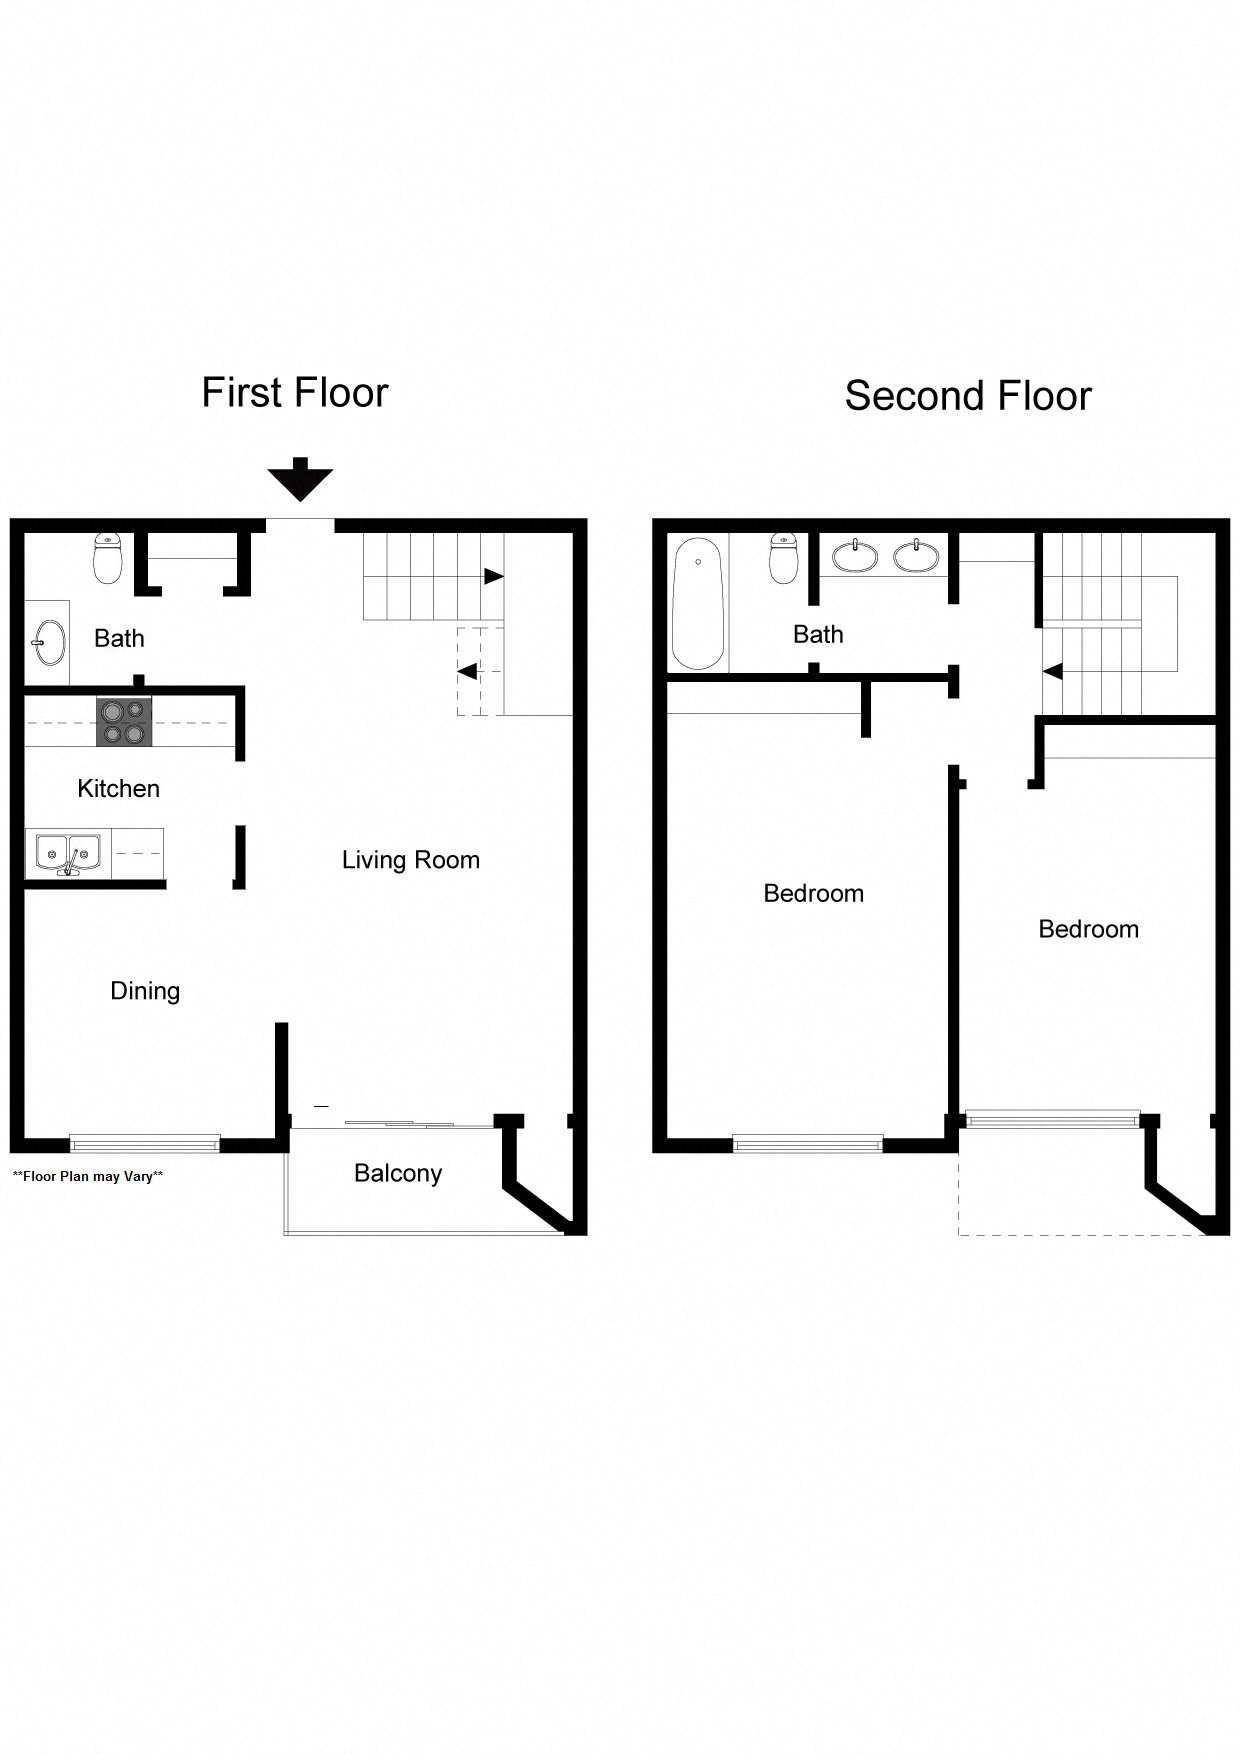 Floor Plans of Whitney Ridge Apartments in Fairport, NY